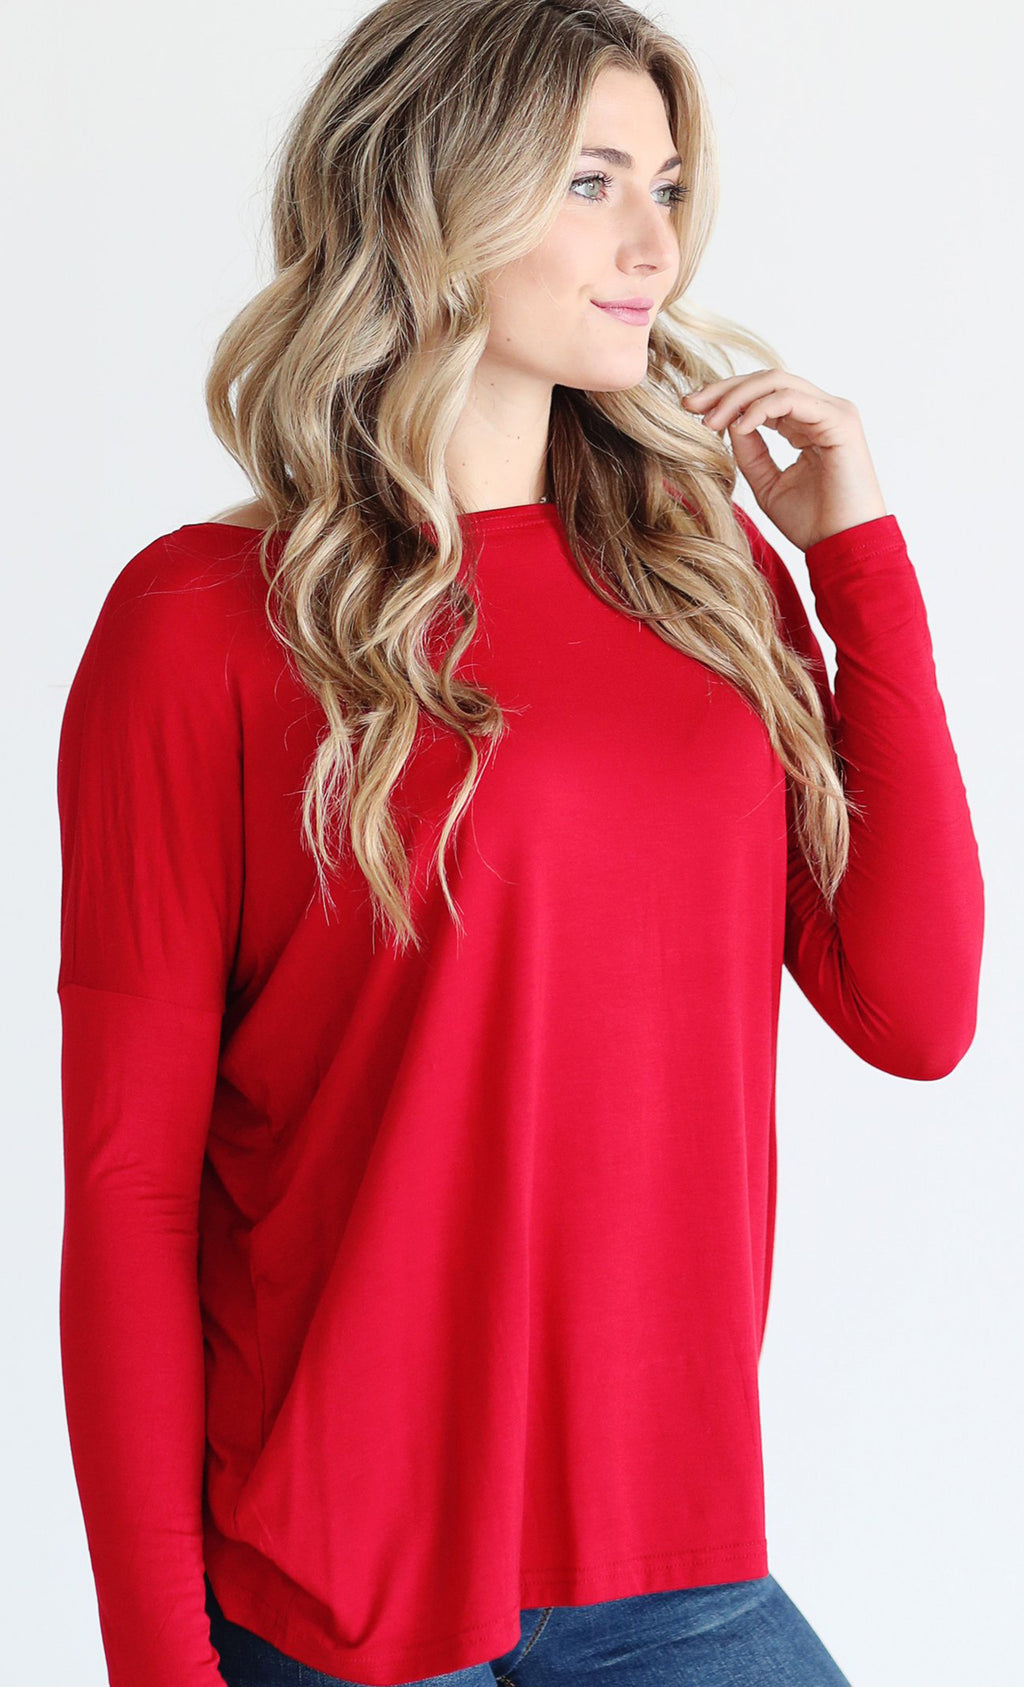 Basic Piko 1988 Holiday Red Bamboo Piko Comfy Boat Neck Long Sleeve Slouchy Knit Tee Shirt Top